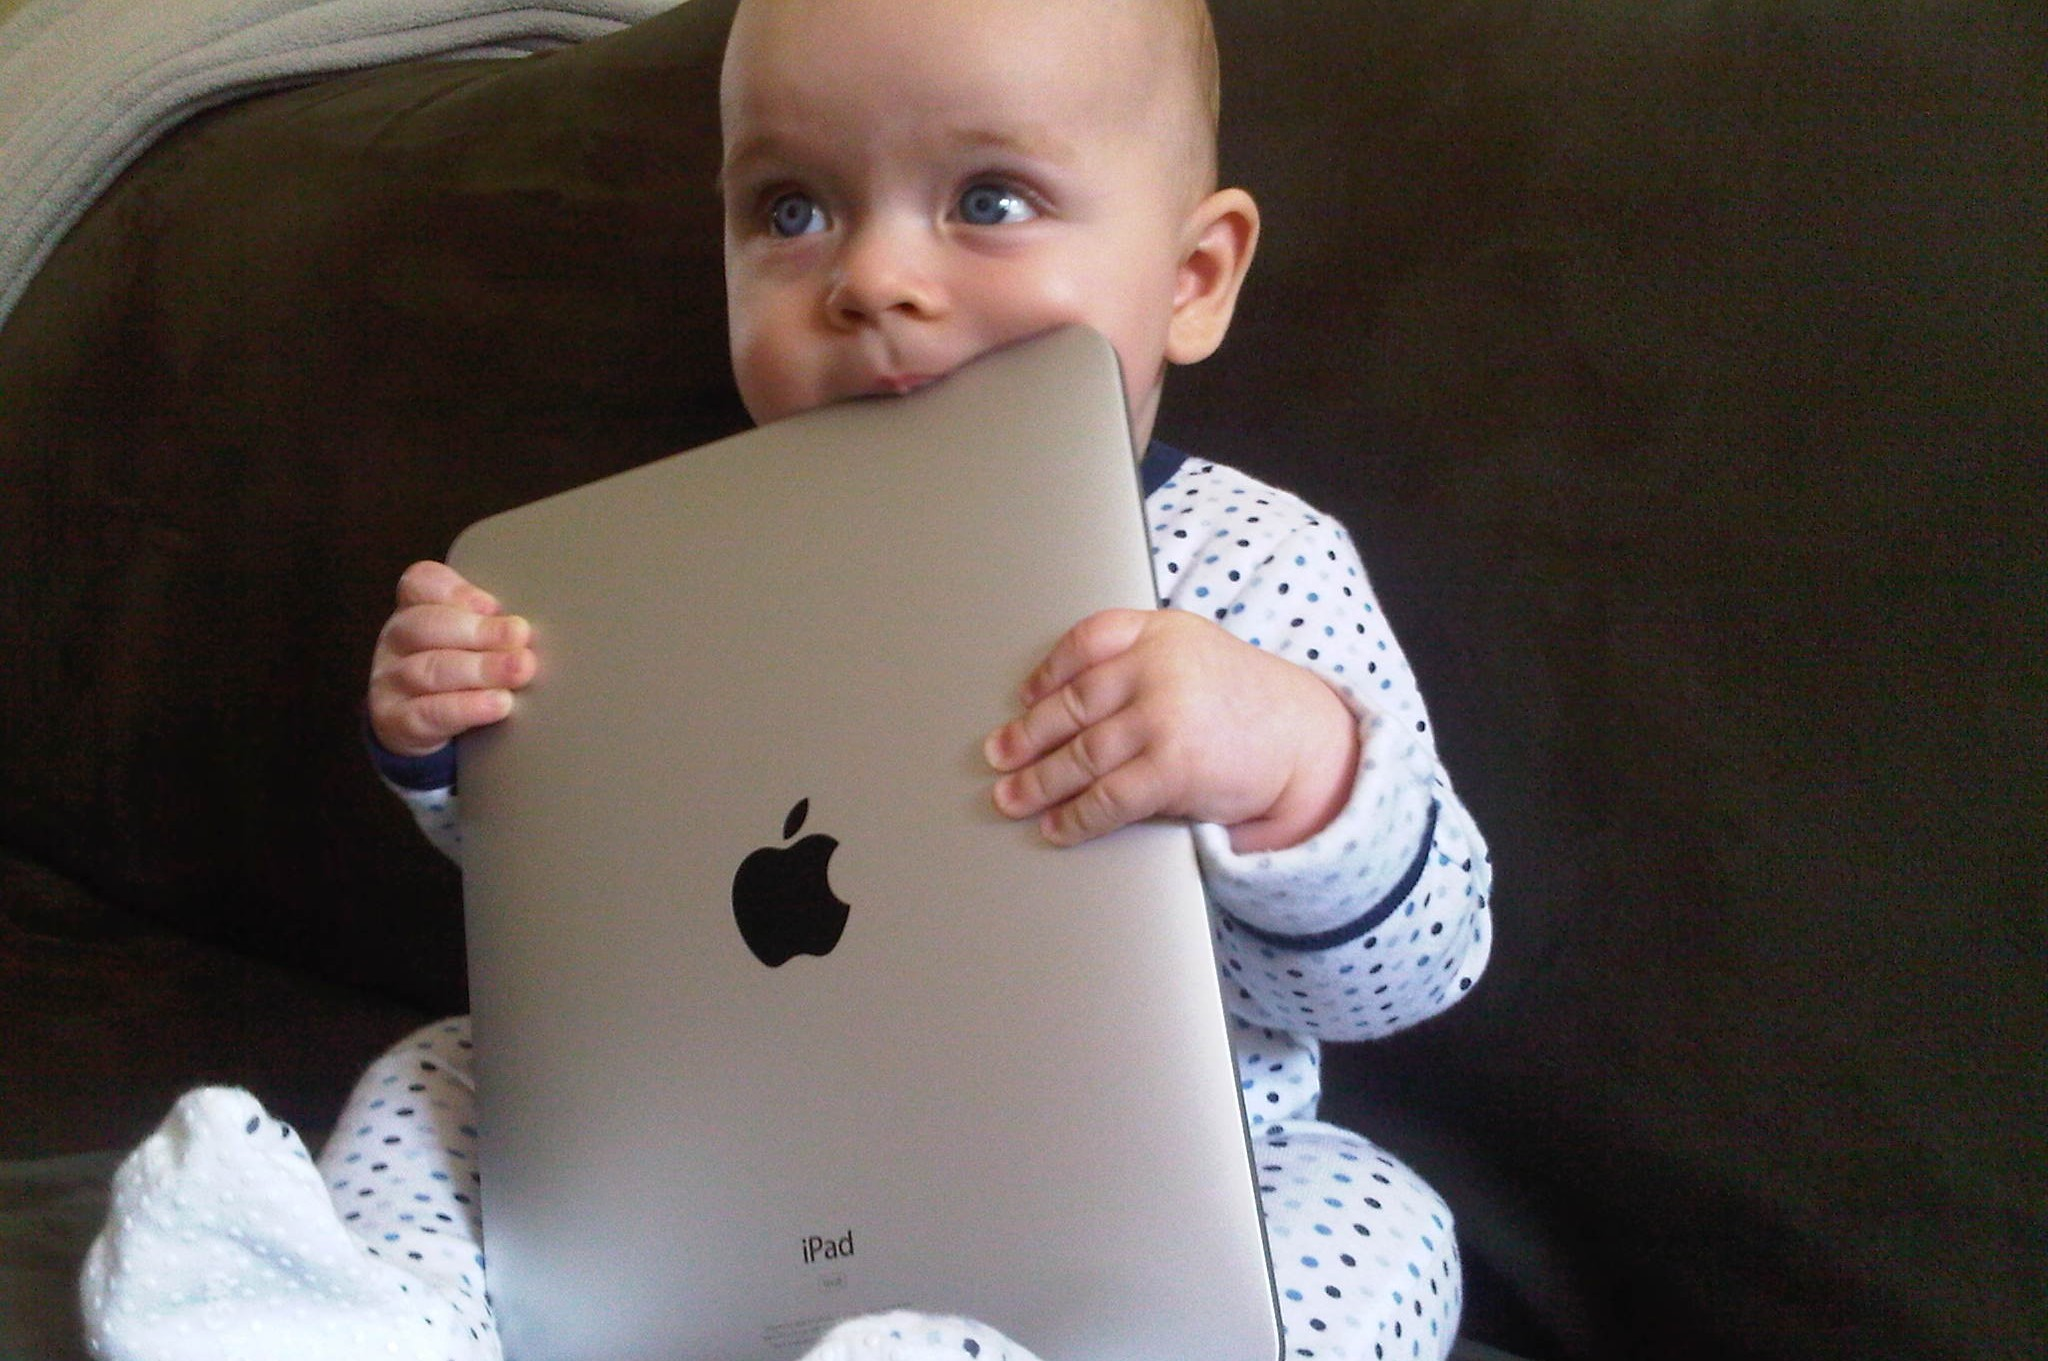 What if Apple Made Baby Products